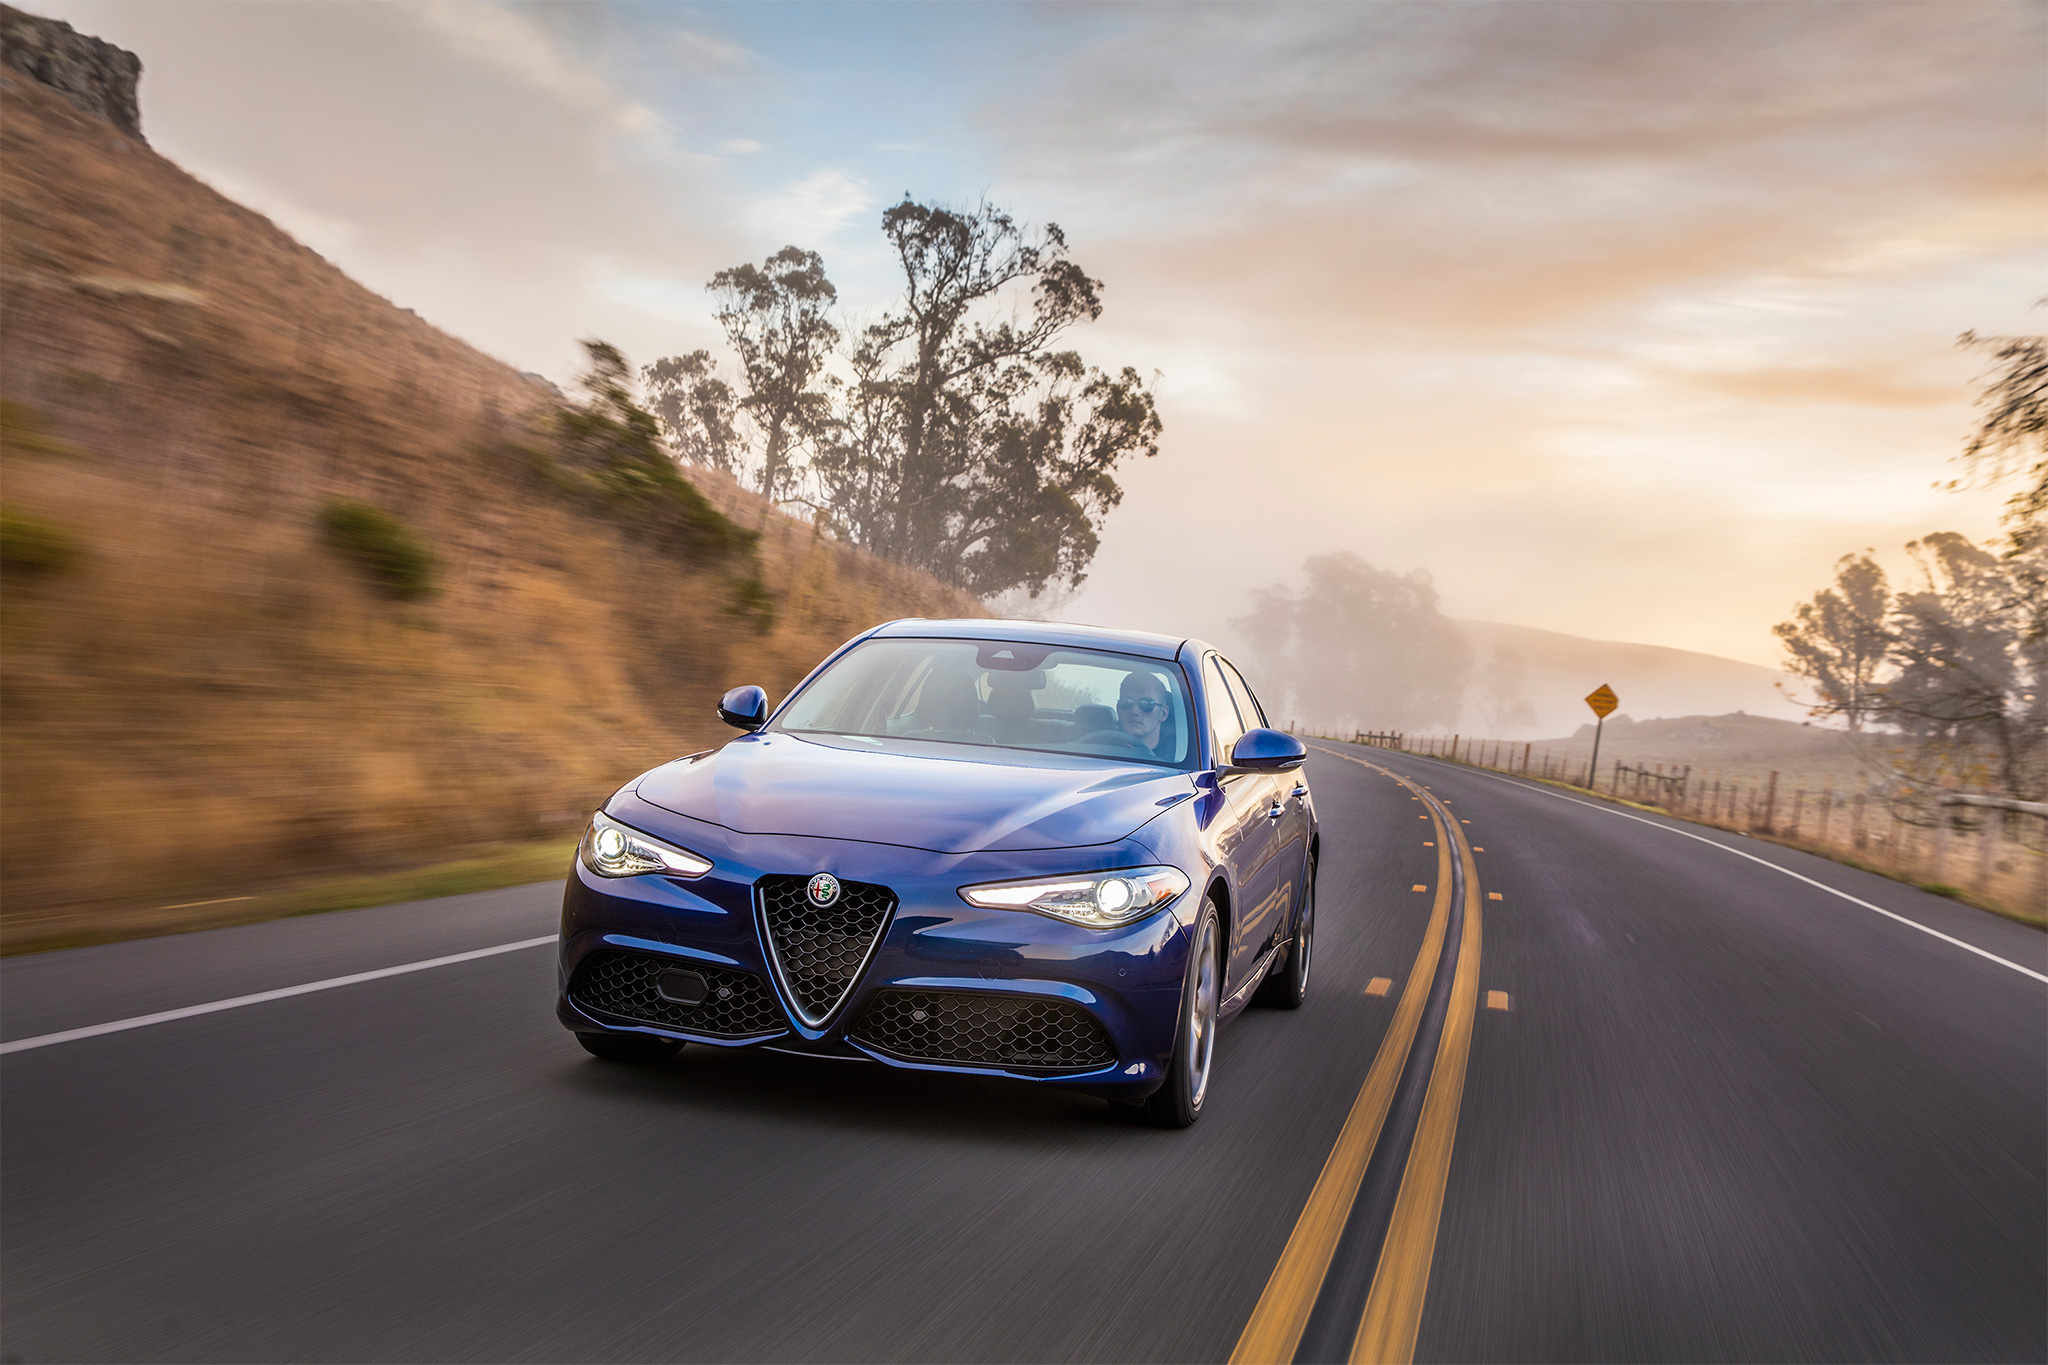 2017-Alfa-Romeo-Giulia-Ti-front-view-in-motion-01